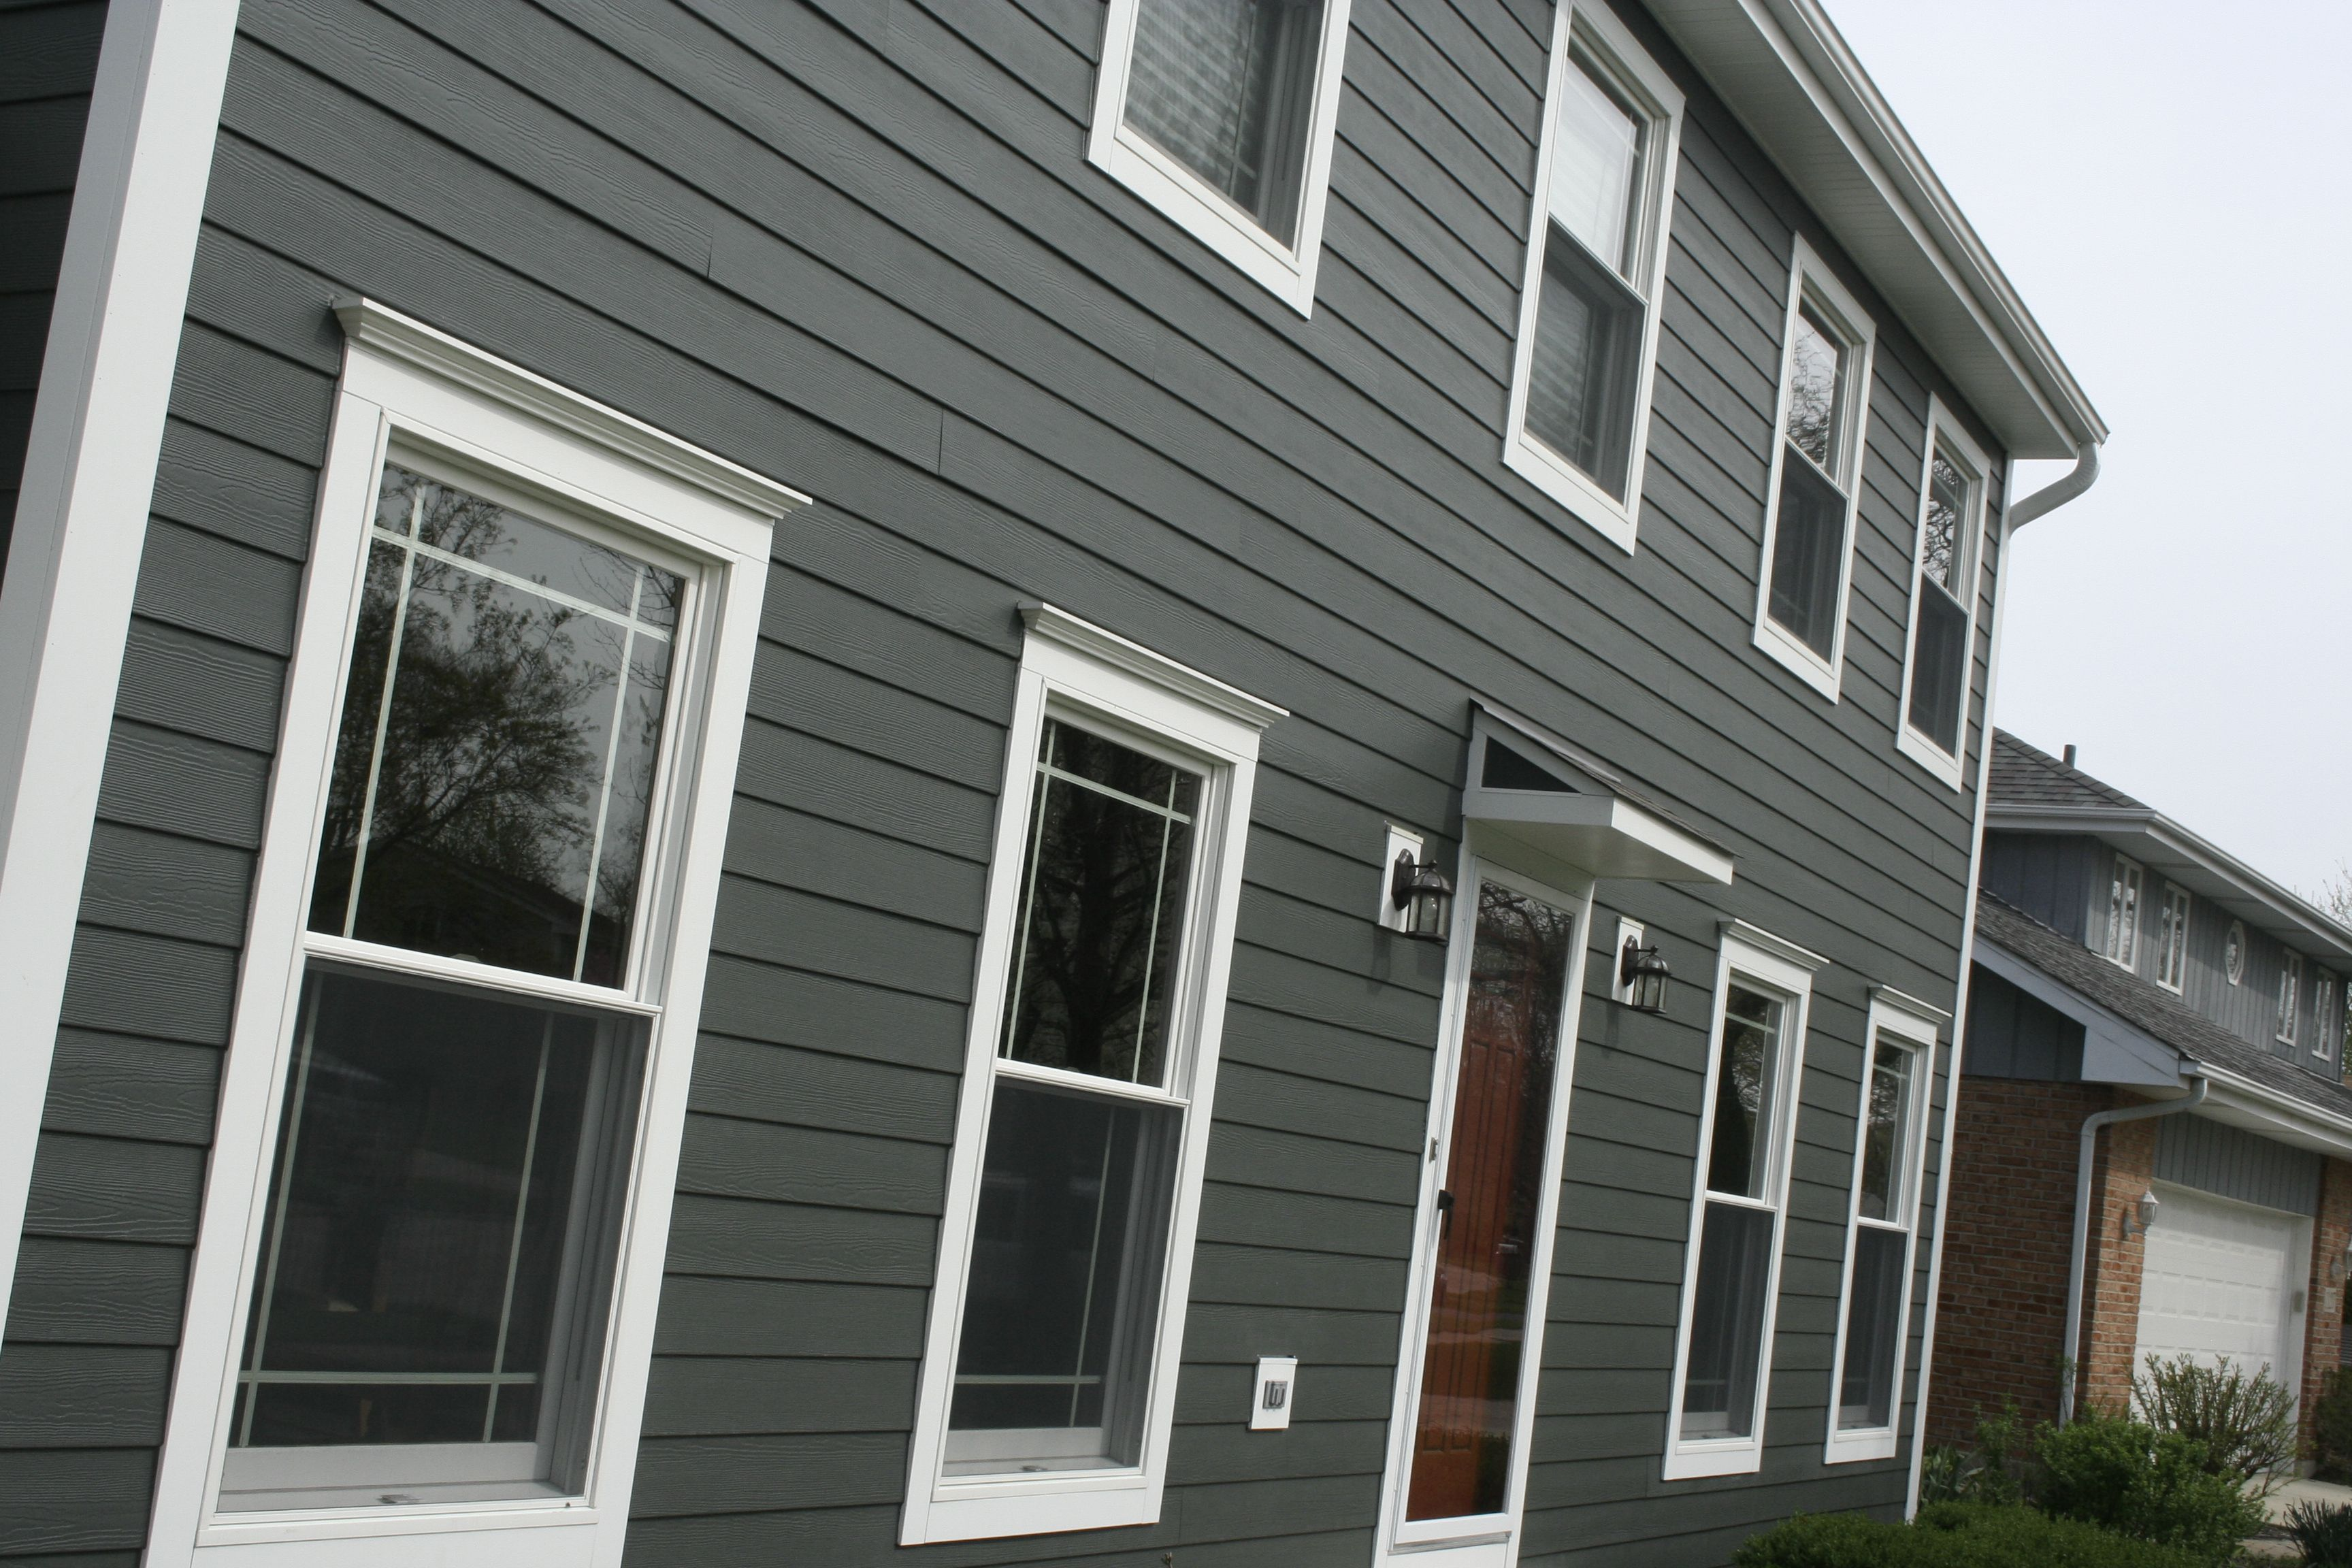 Iron Gray James Hardie And Pretty Red Door All With Opal Enterprises James Hardie Siding